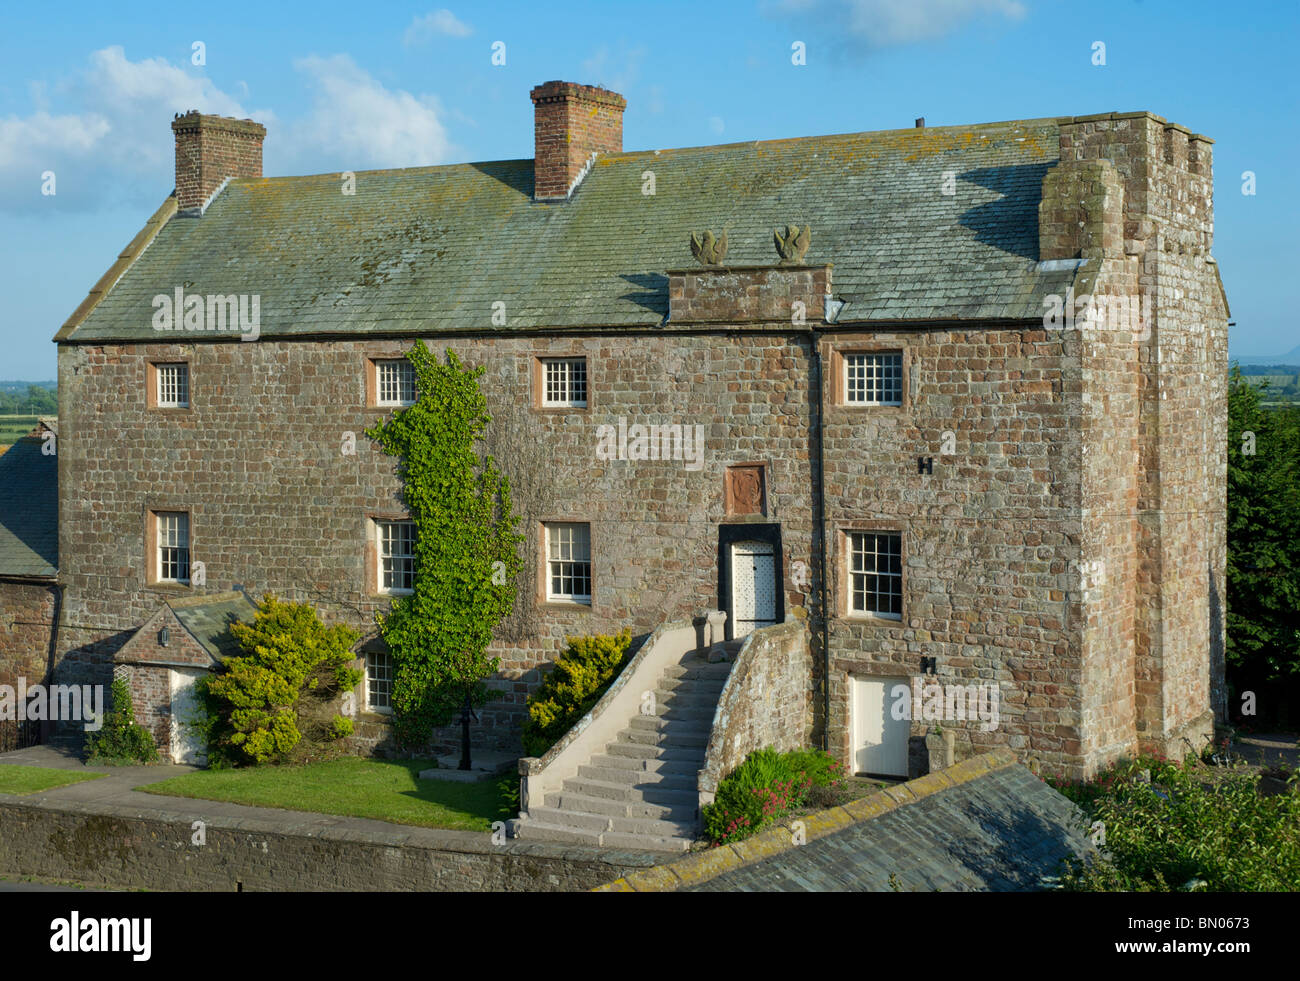 drumburgh-castle-a-fortified-house-in-border-country-cumbria-england-BN0673.jpg